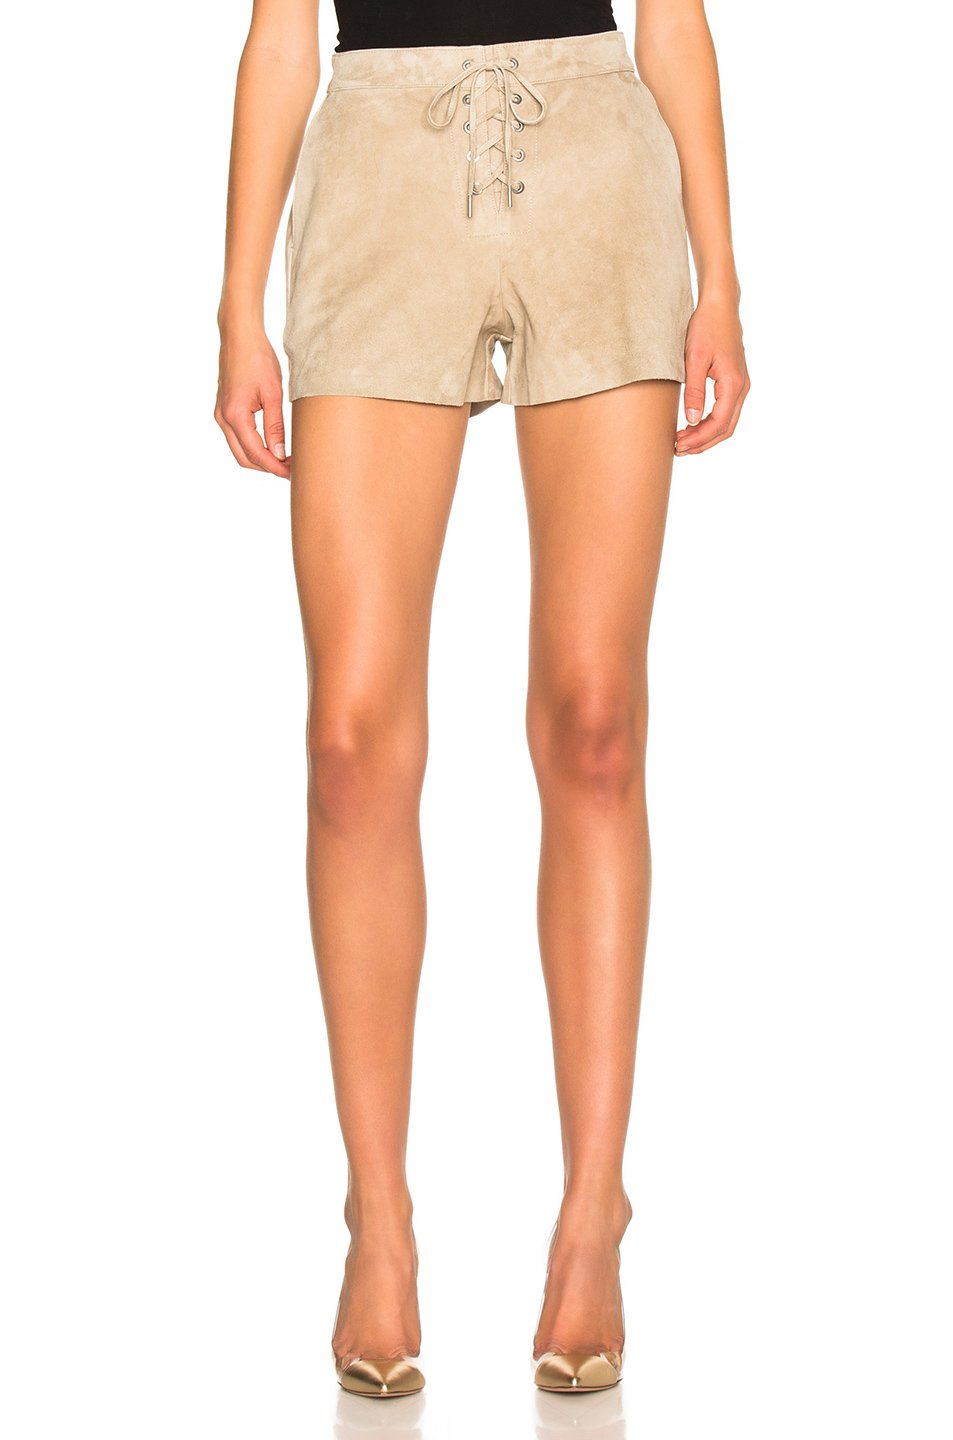 Rag & Bone/JEAN Suede Lace Up Short, Stone, Size 30